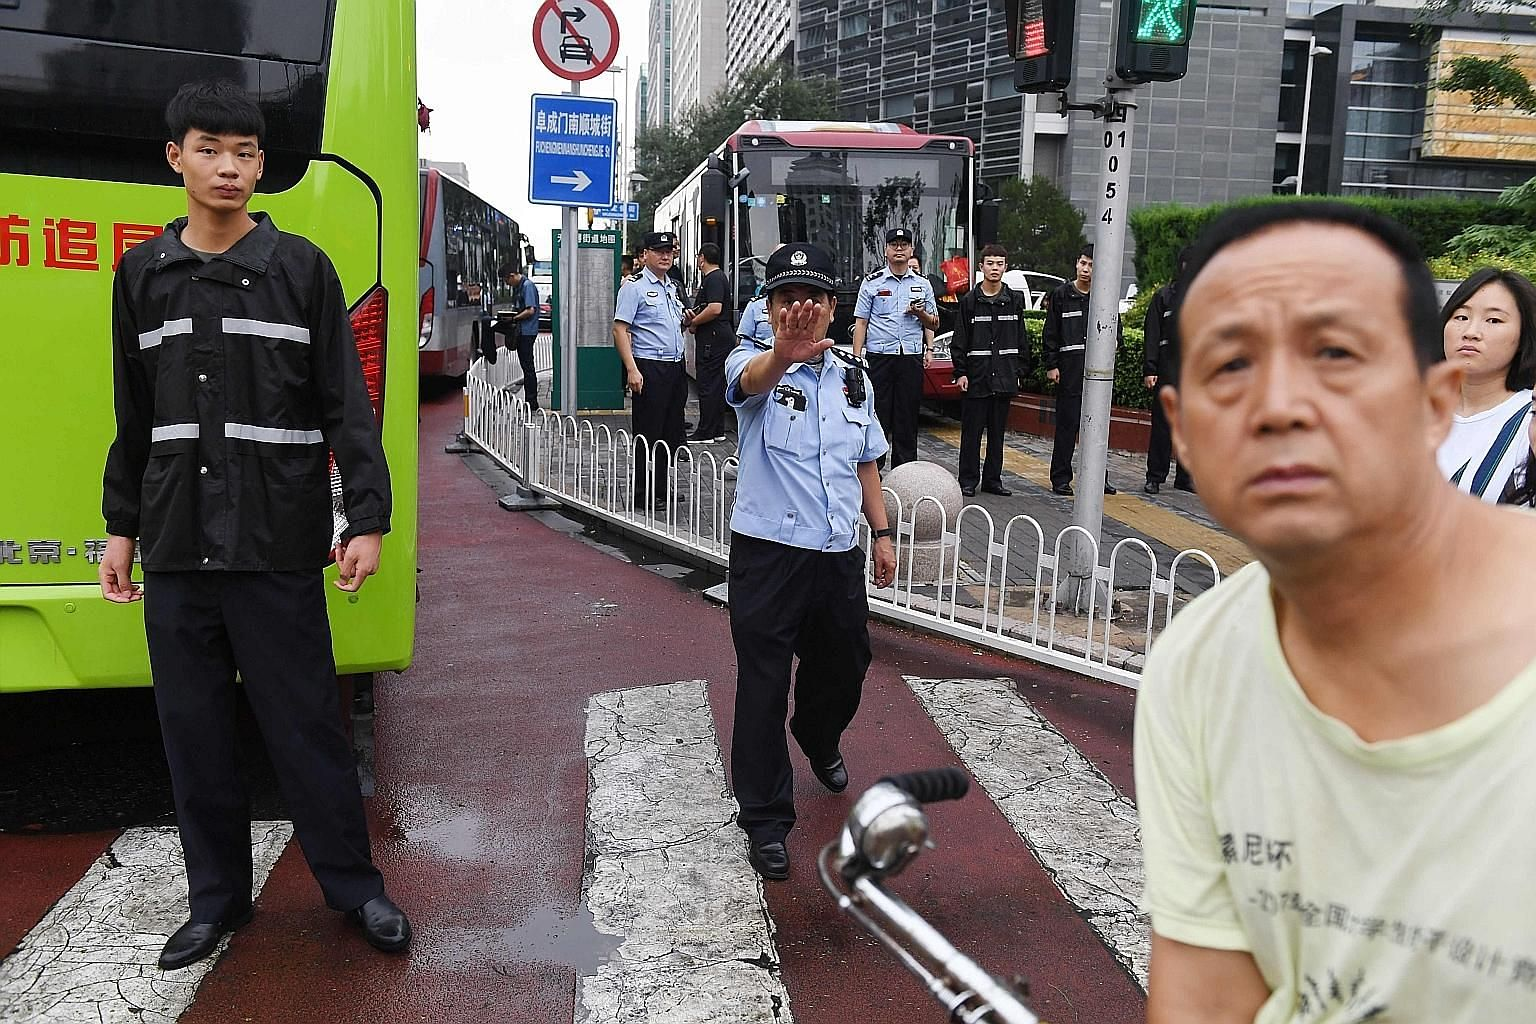 Police officers in front of the China Banking Regulatory Commission yesterday, as petitioners from all over China planning to protest against losses sustained on peer-to-peer lending platforms were loaded into buses and driven away under police escor